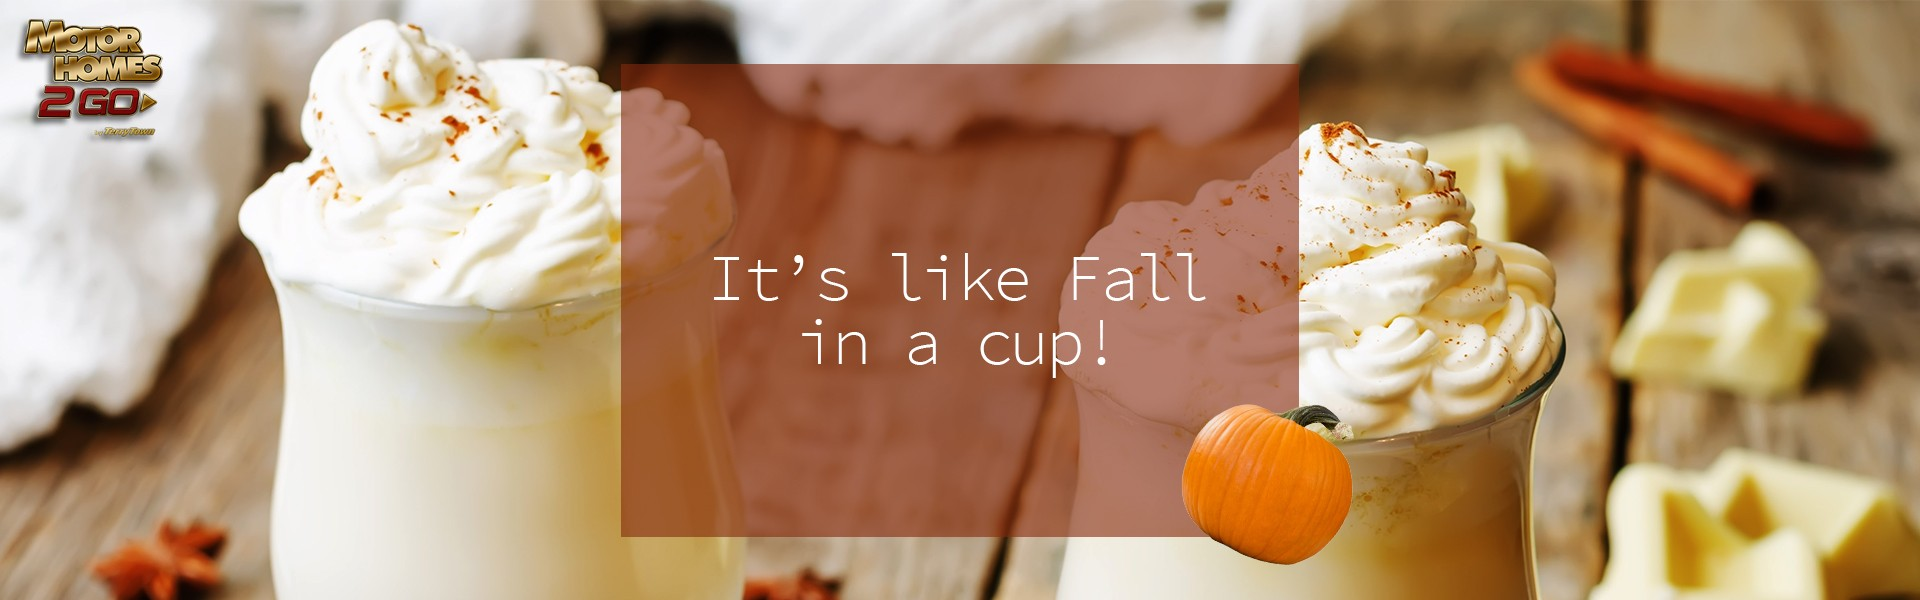 It's like fall in a cup! White chocolate pumpkin spice hot chocolate with cinnamon